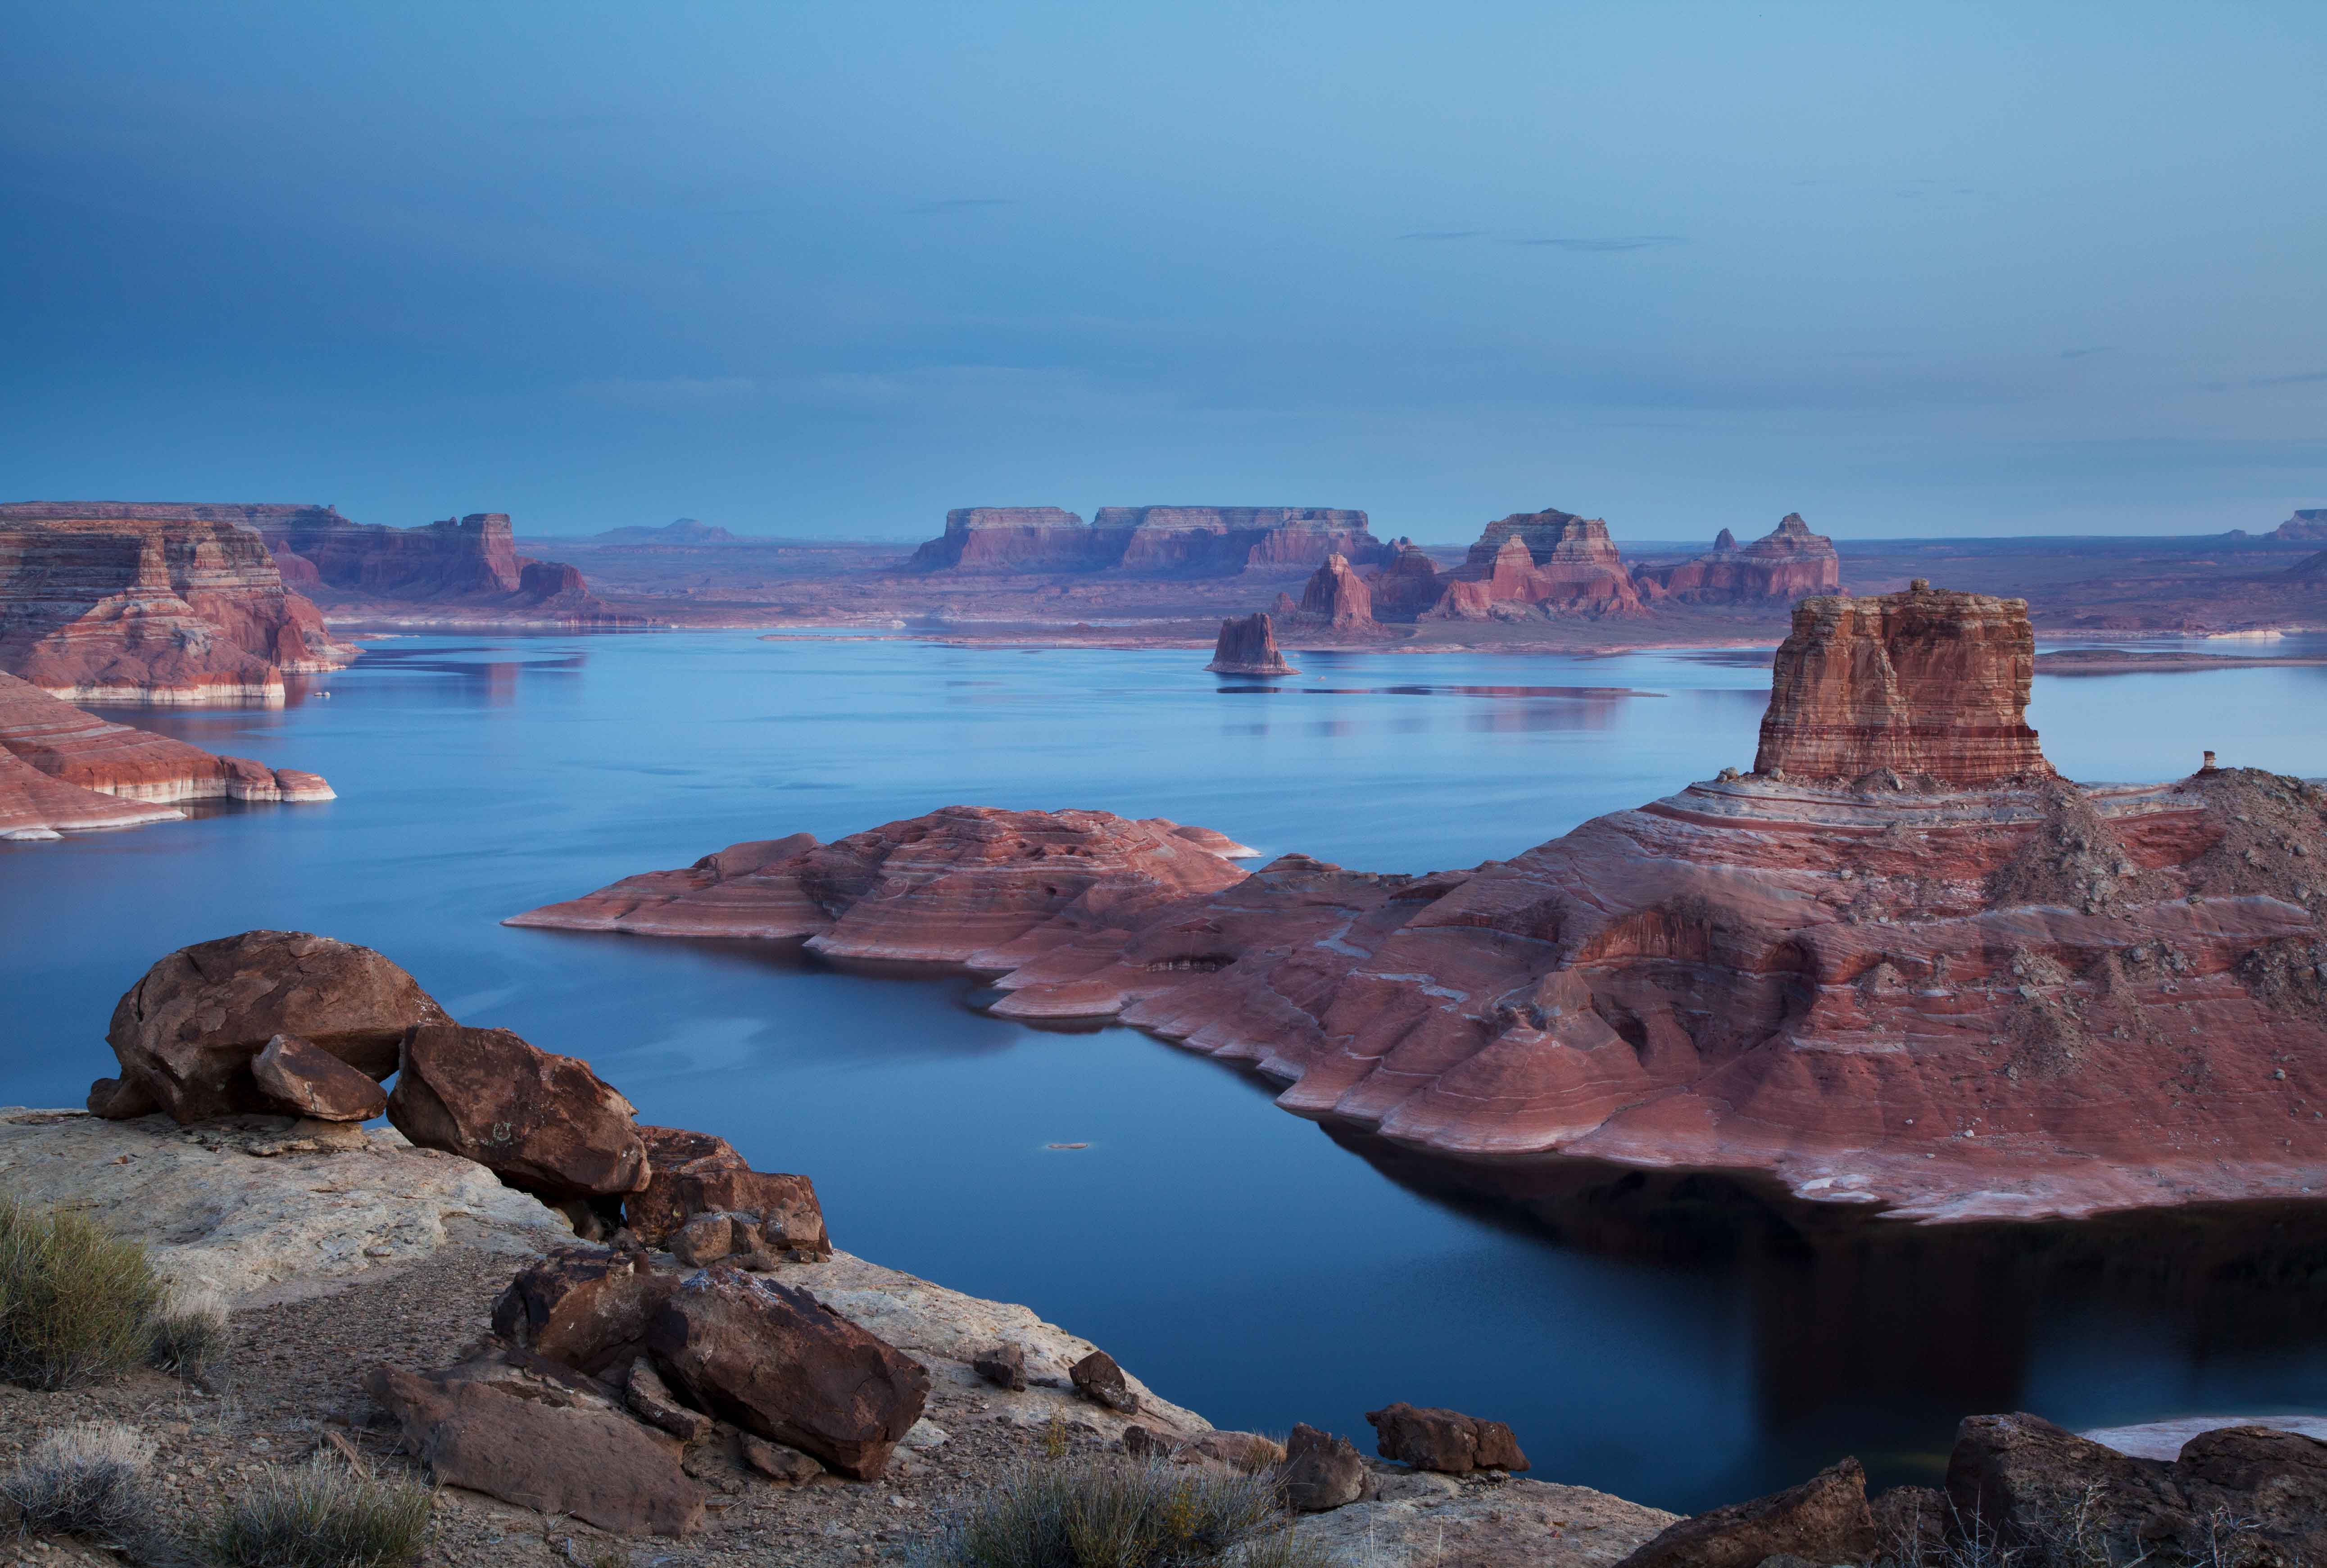 Looking across Lake Powell from Utah to Arizona. The formation at middle-right is Cookie Jar Butte in Padre Bay